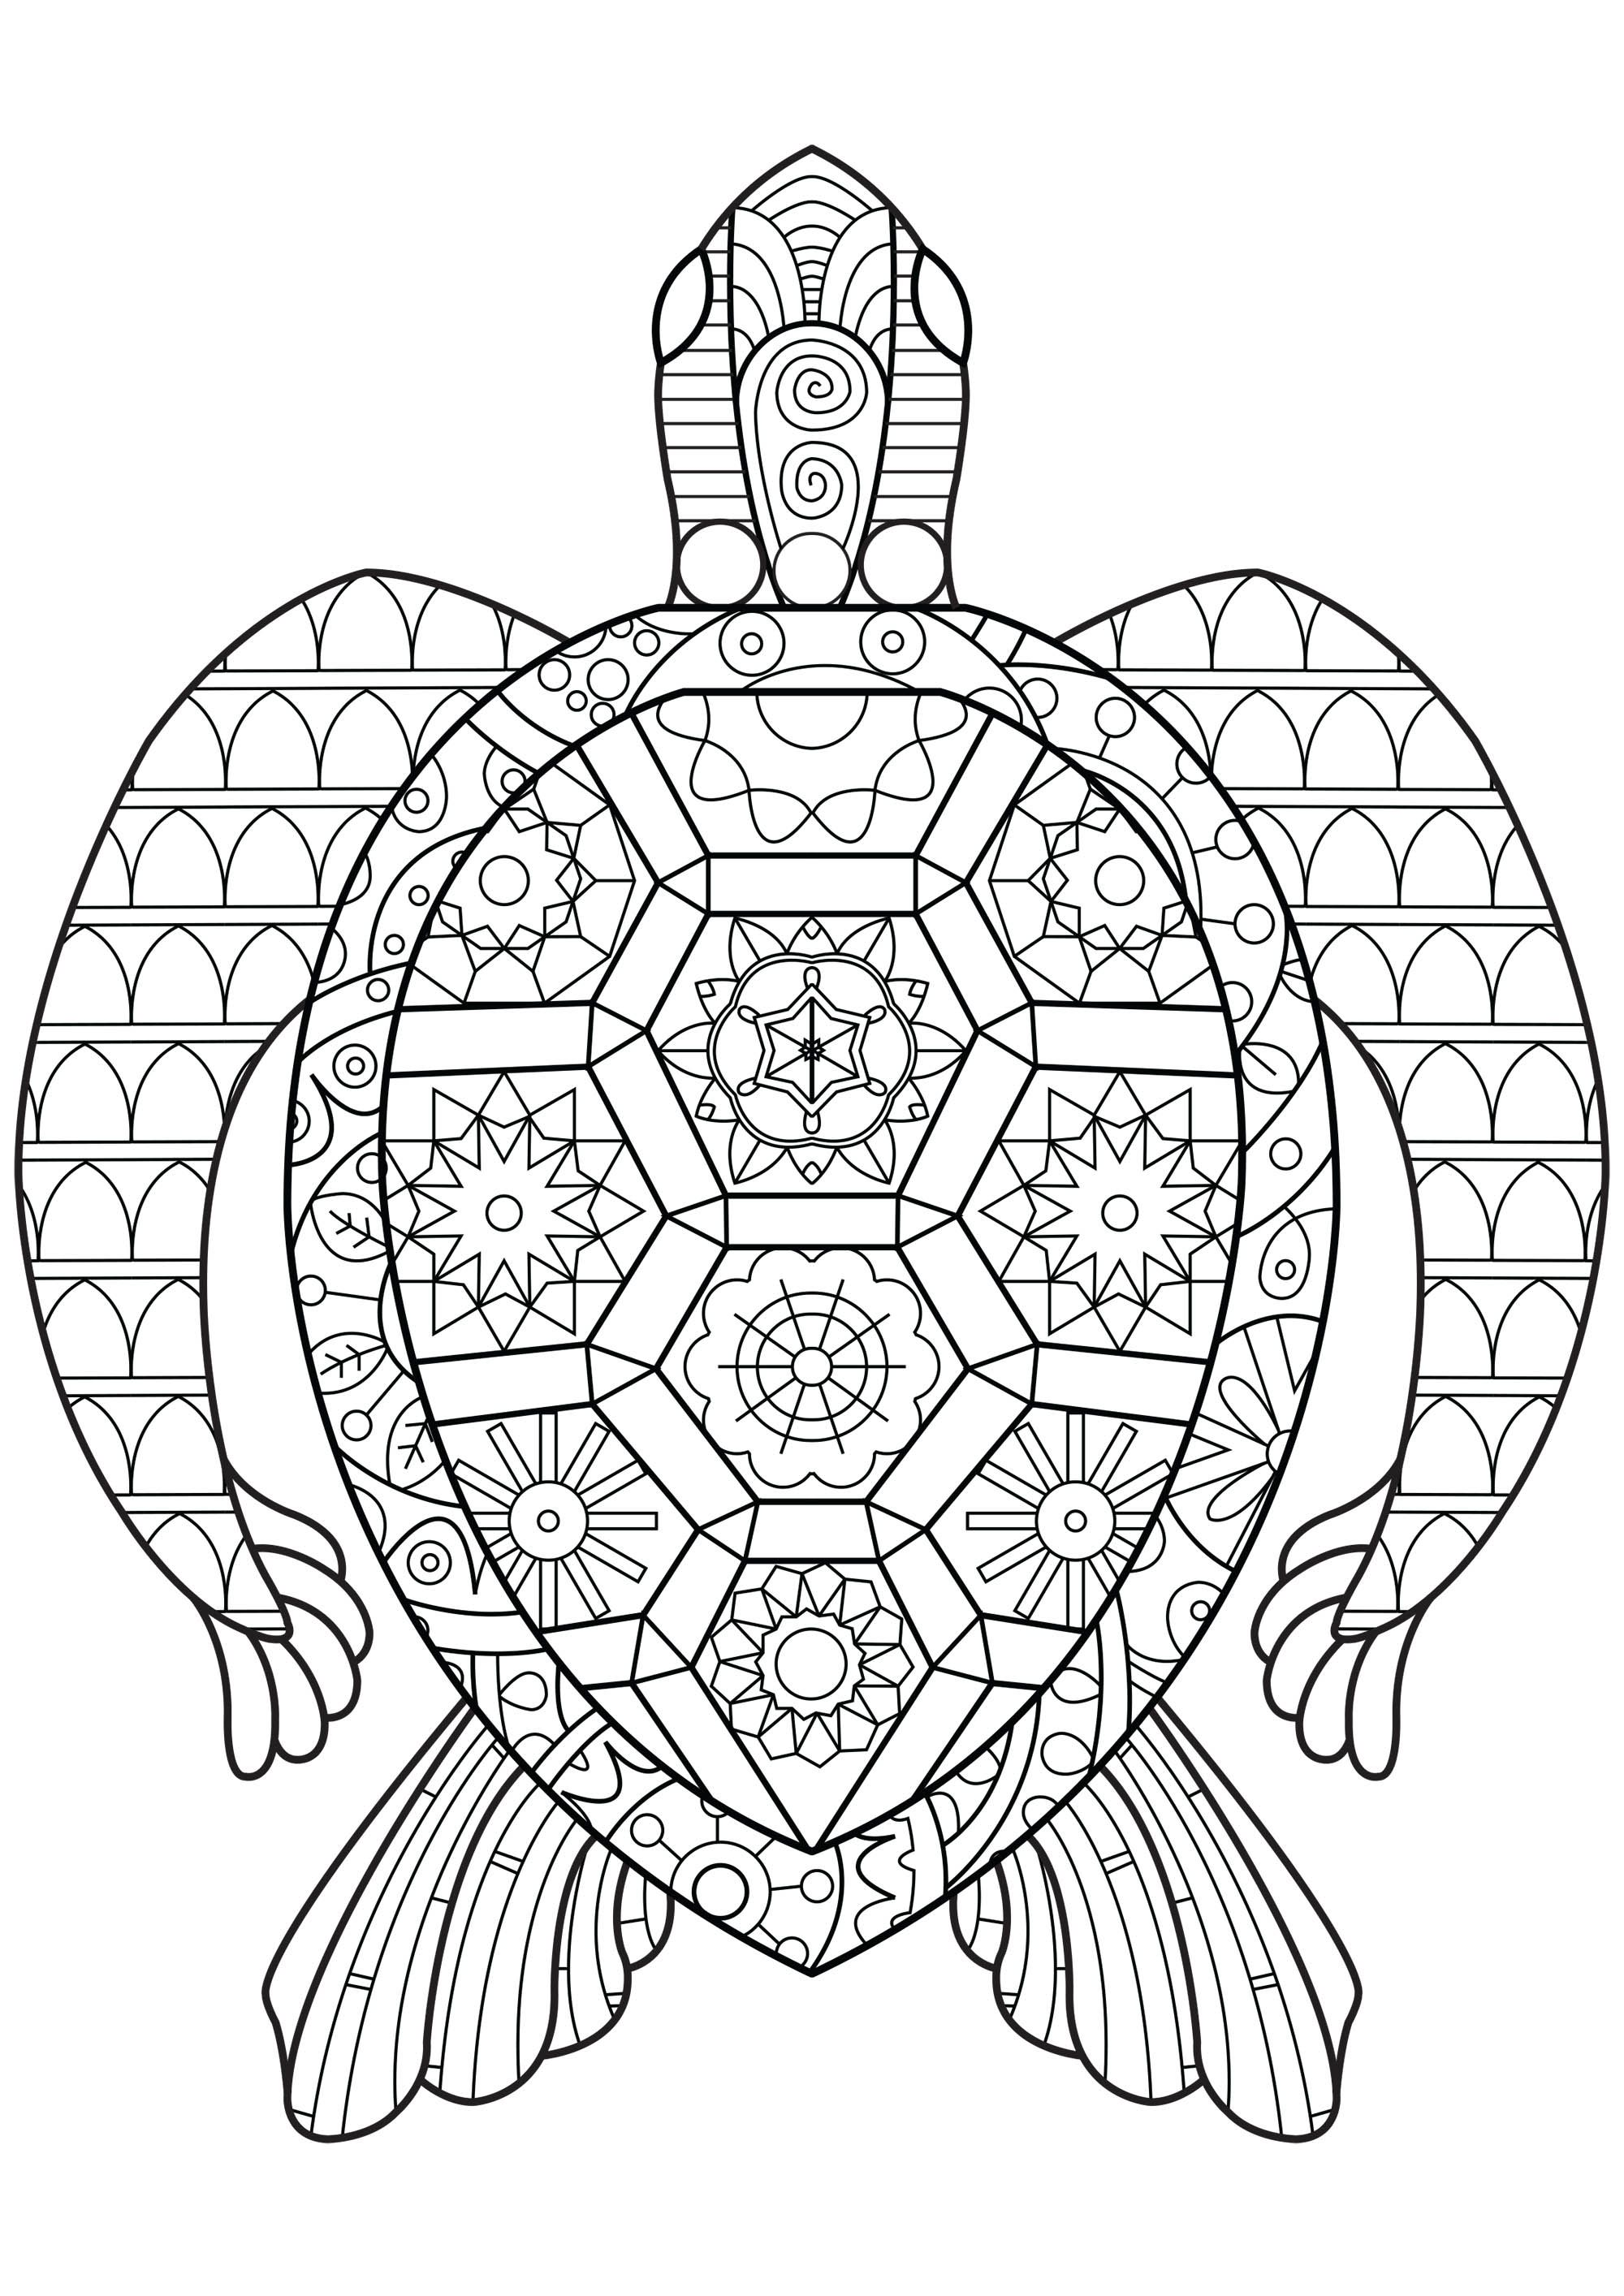 Tortue Zen Une Tortue Aux Motifs Abstraits Et Reguliers A Partir De La Galerie Tortues Ar Turtle Coloring Pages Lion Coloring Pages Animal Coloring Pages